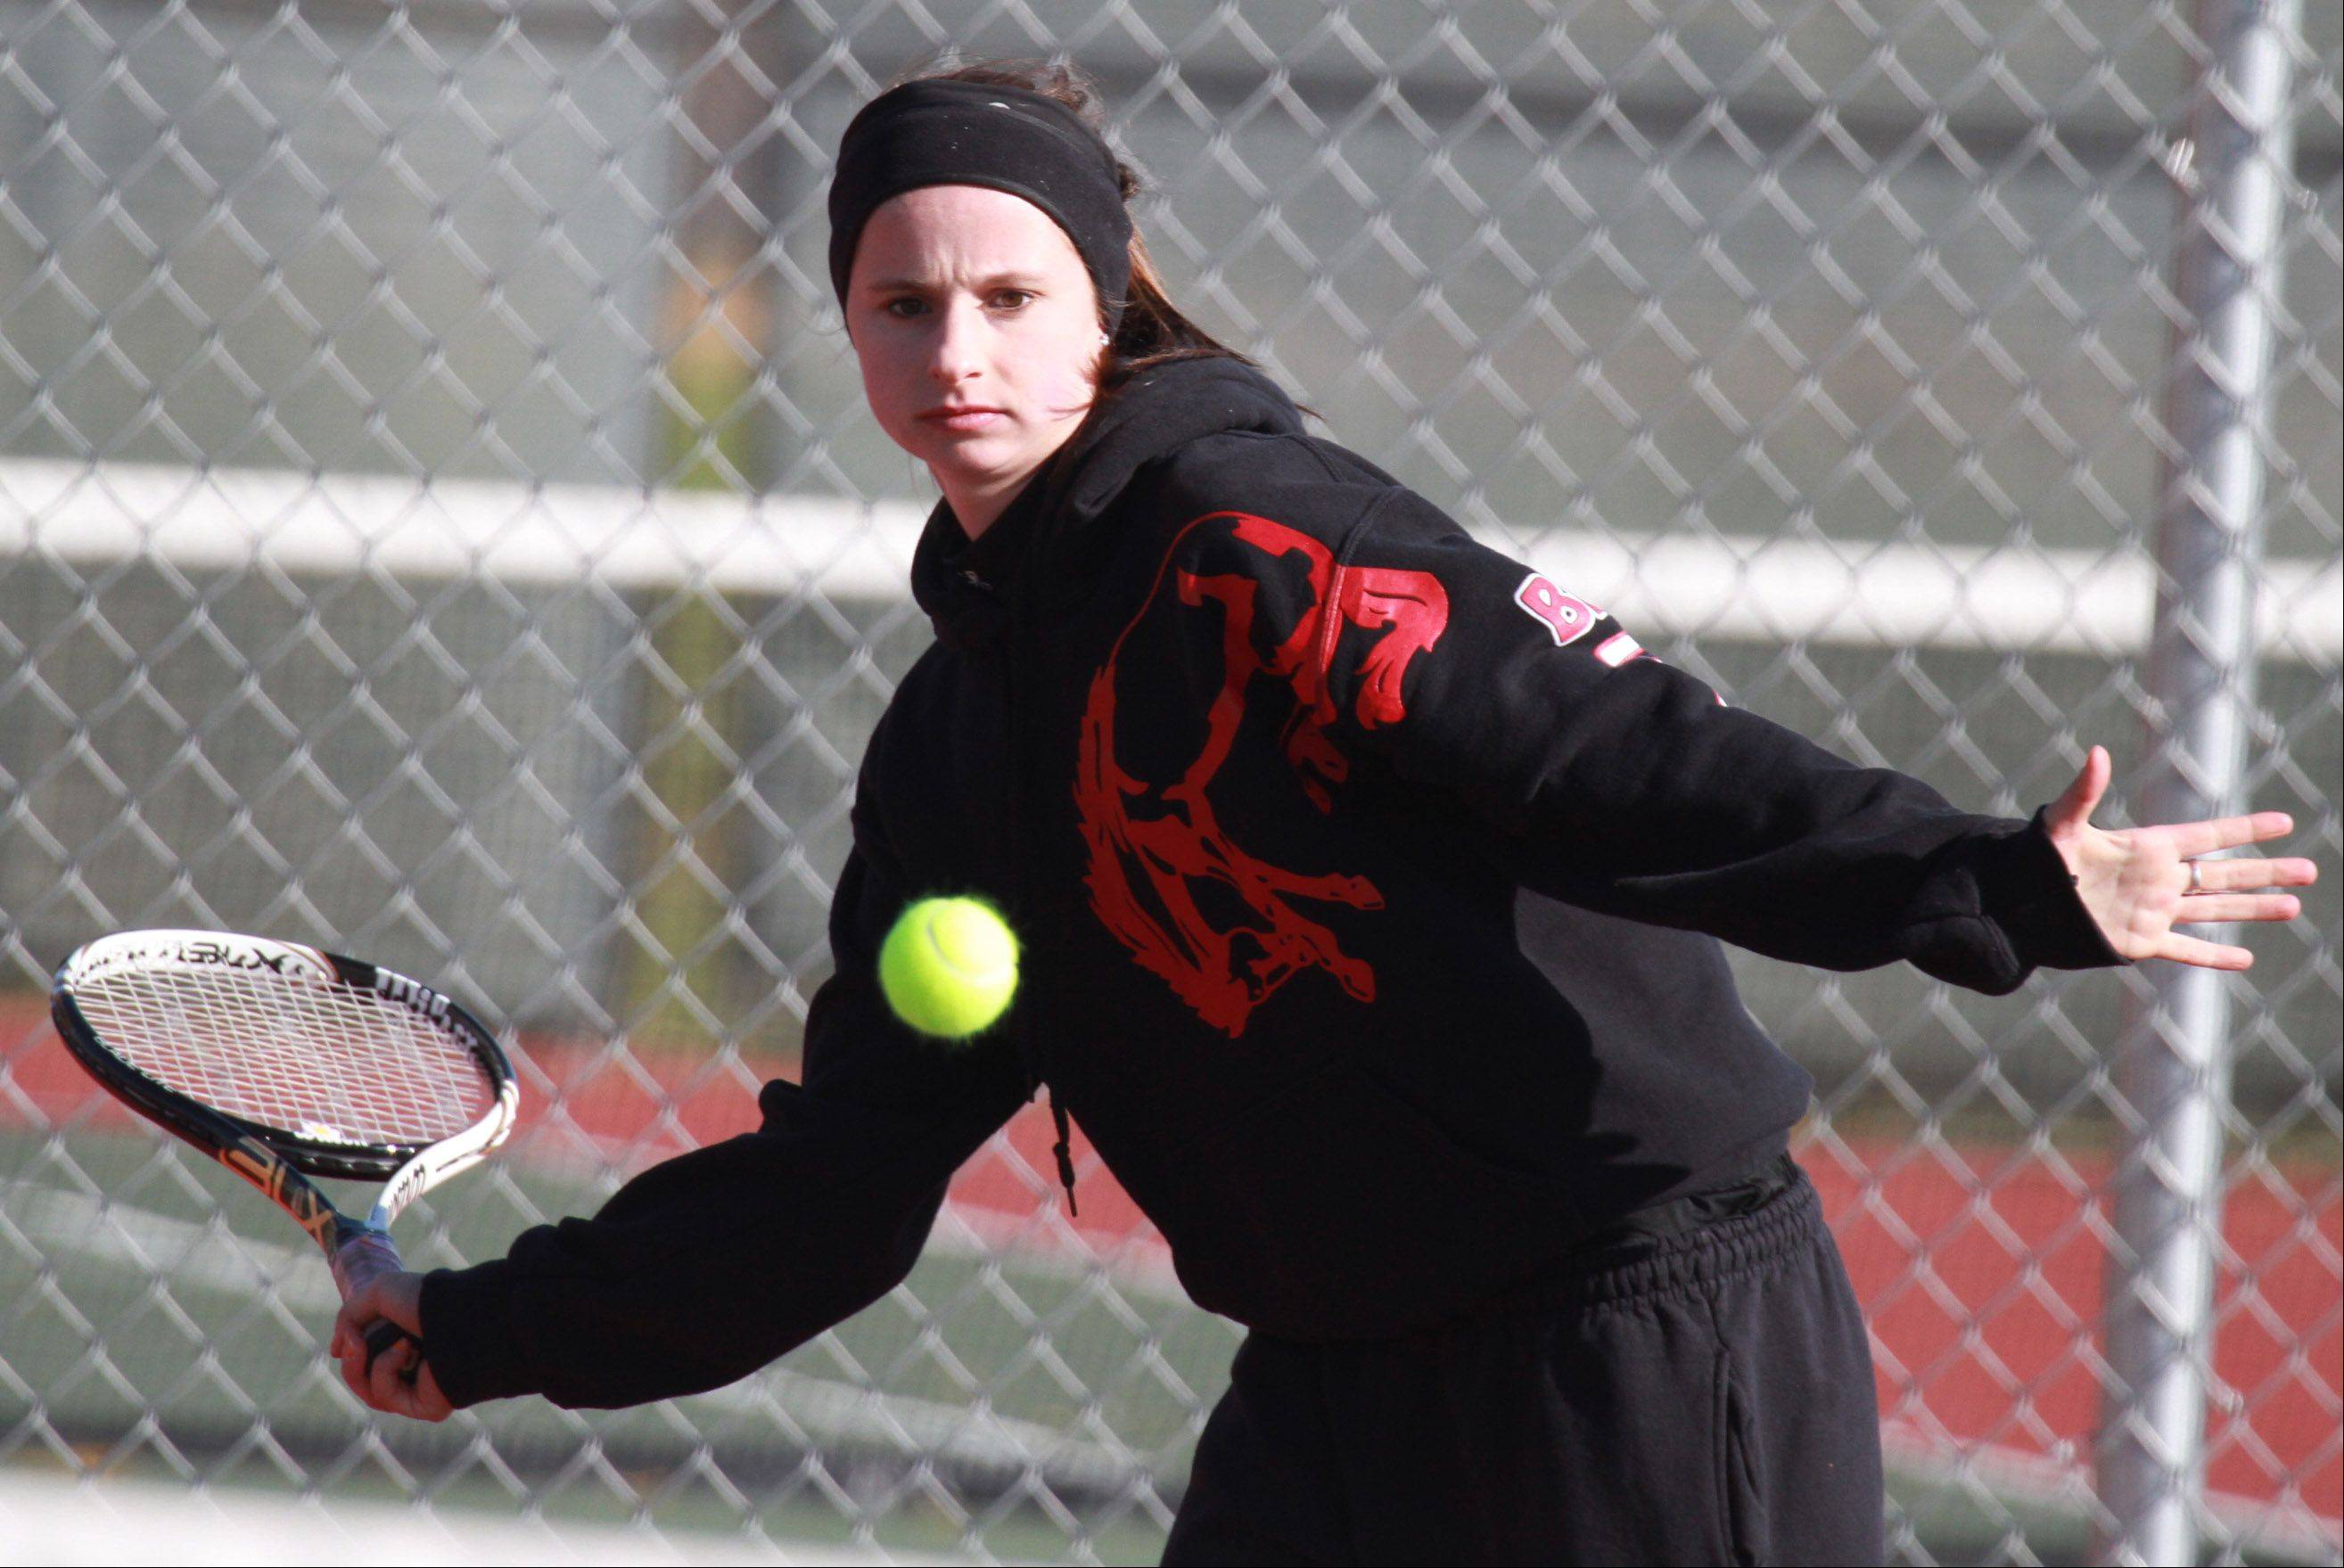 Barrington's Lucia Stumbras returns a shot during MSL doubles play Saturday at Prospect. Stumbras teamed with Zoe Kasiurak against Rolling Meadows' Jackie and Allie Kemph on Saturday morning.